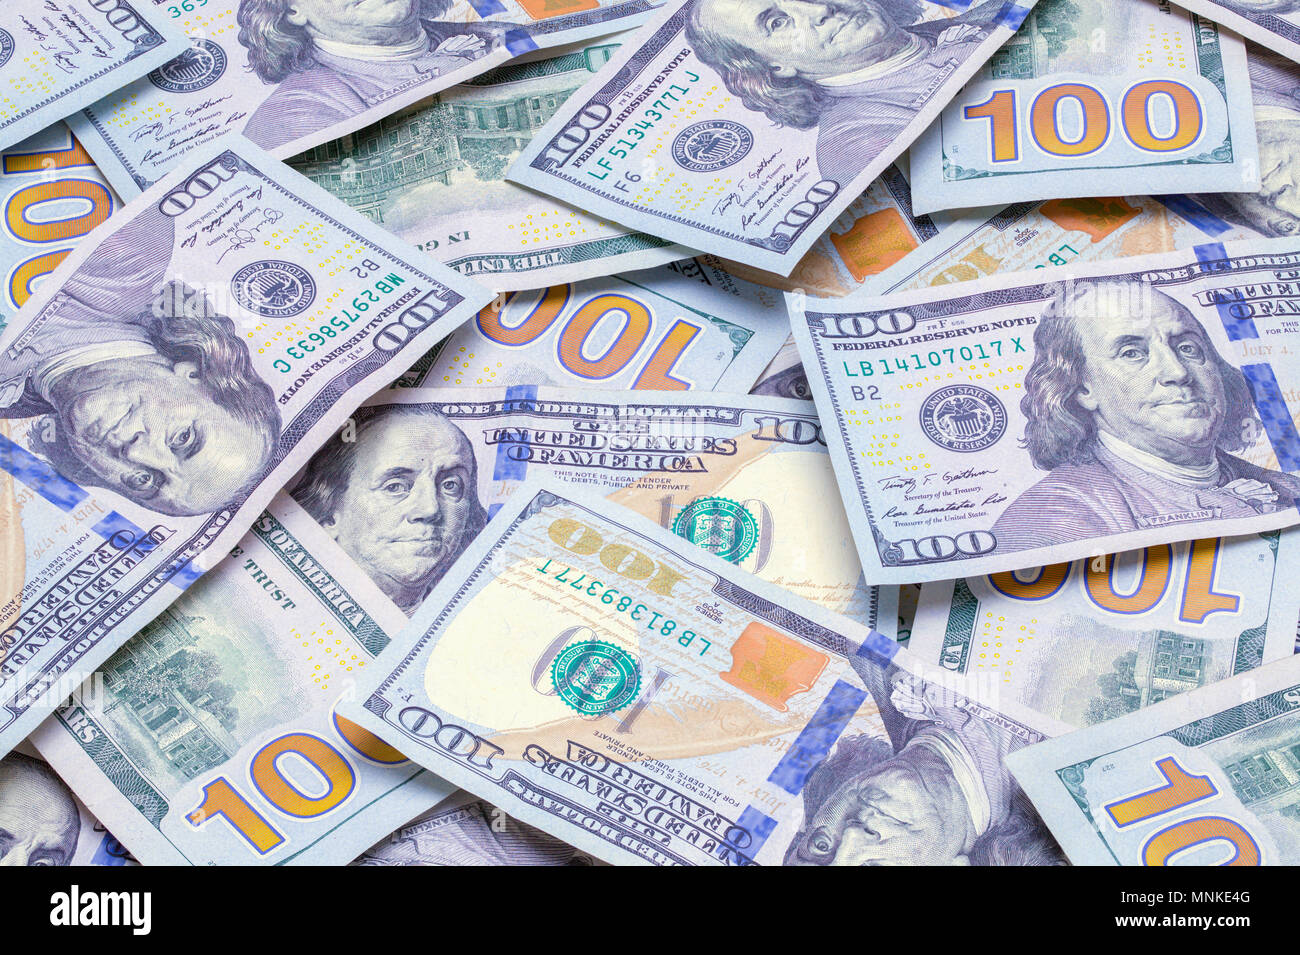 Large Pile of One Hundred Dollars Bills. - Stock Image